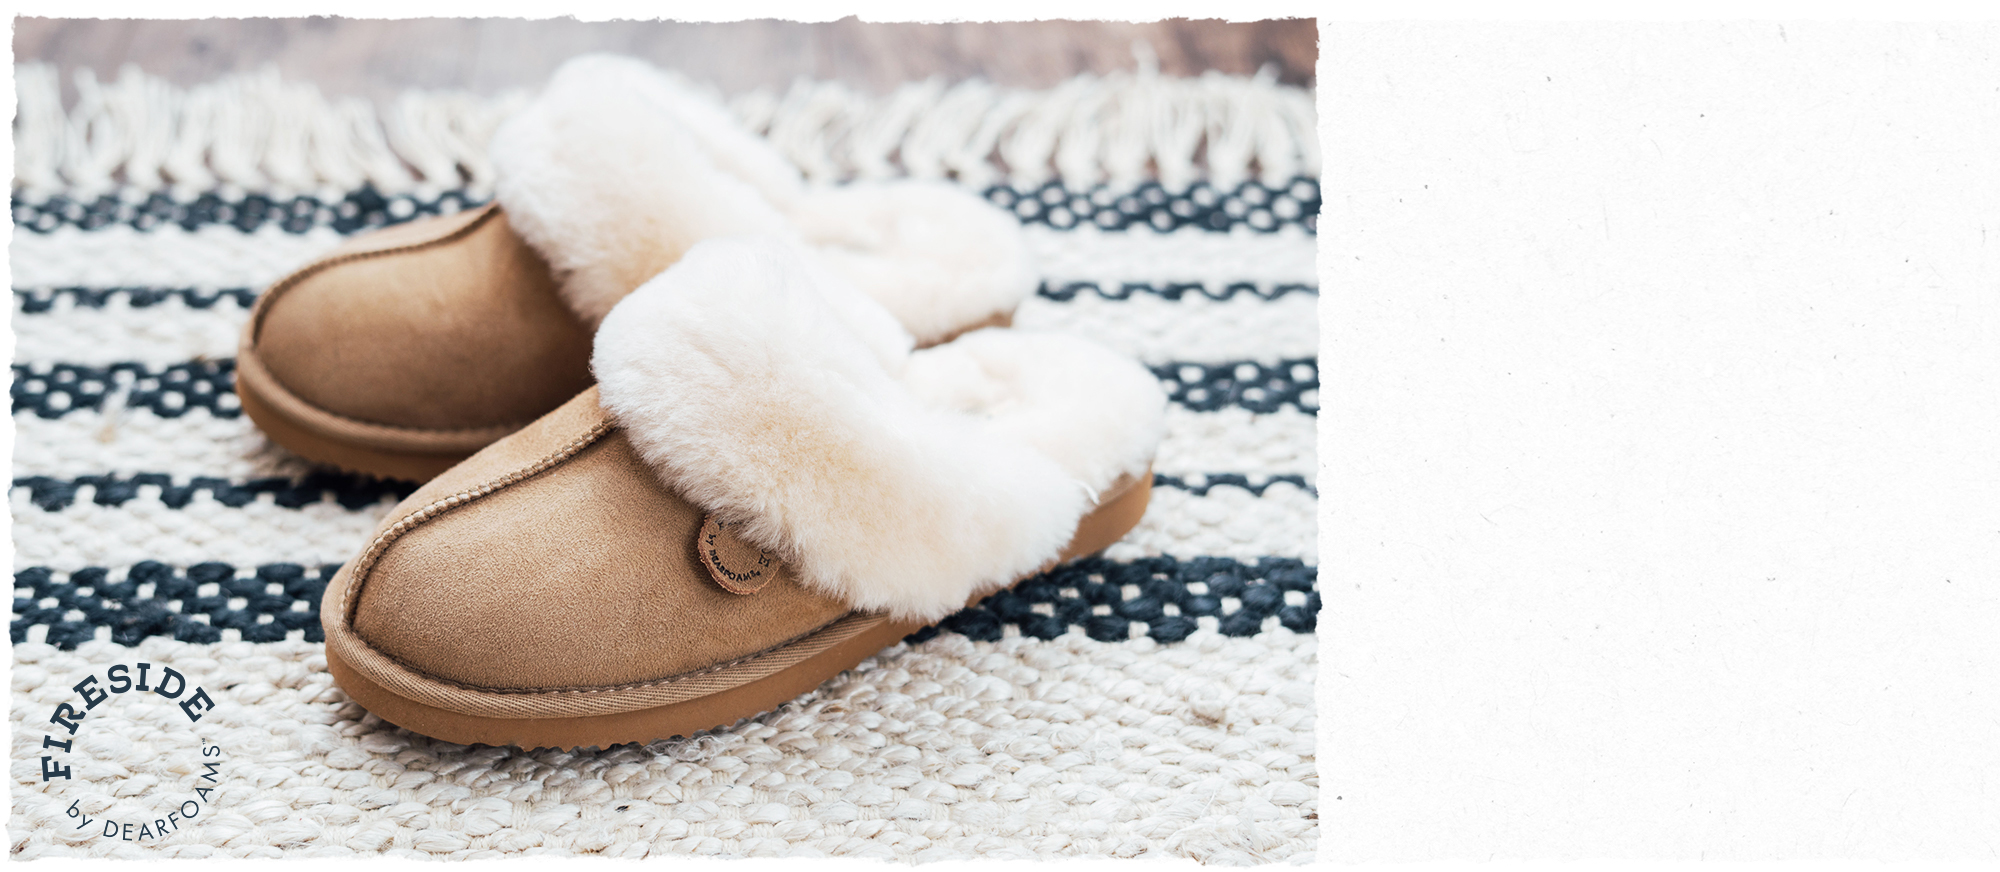 Our Top-Rated Slipper for Style & Value